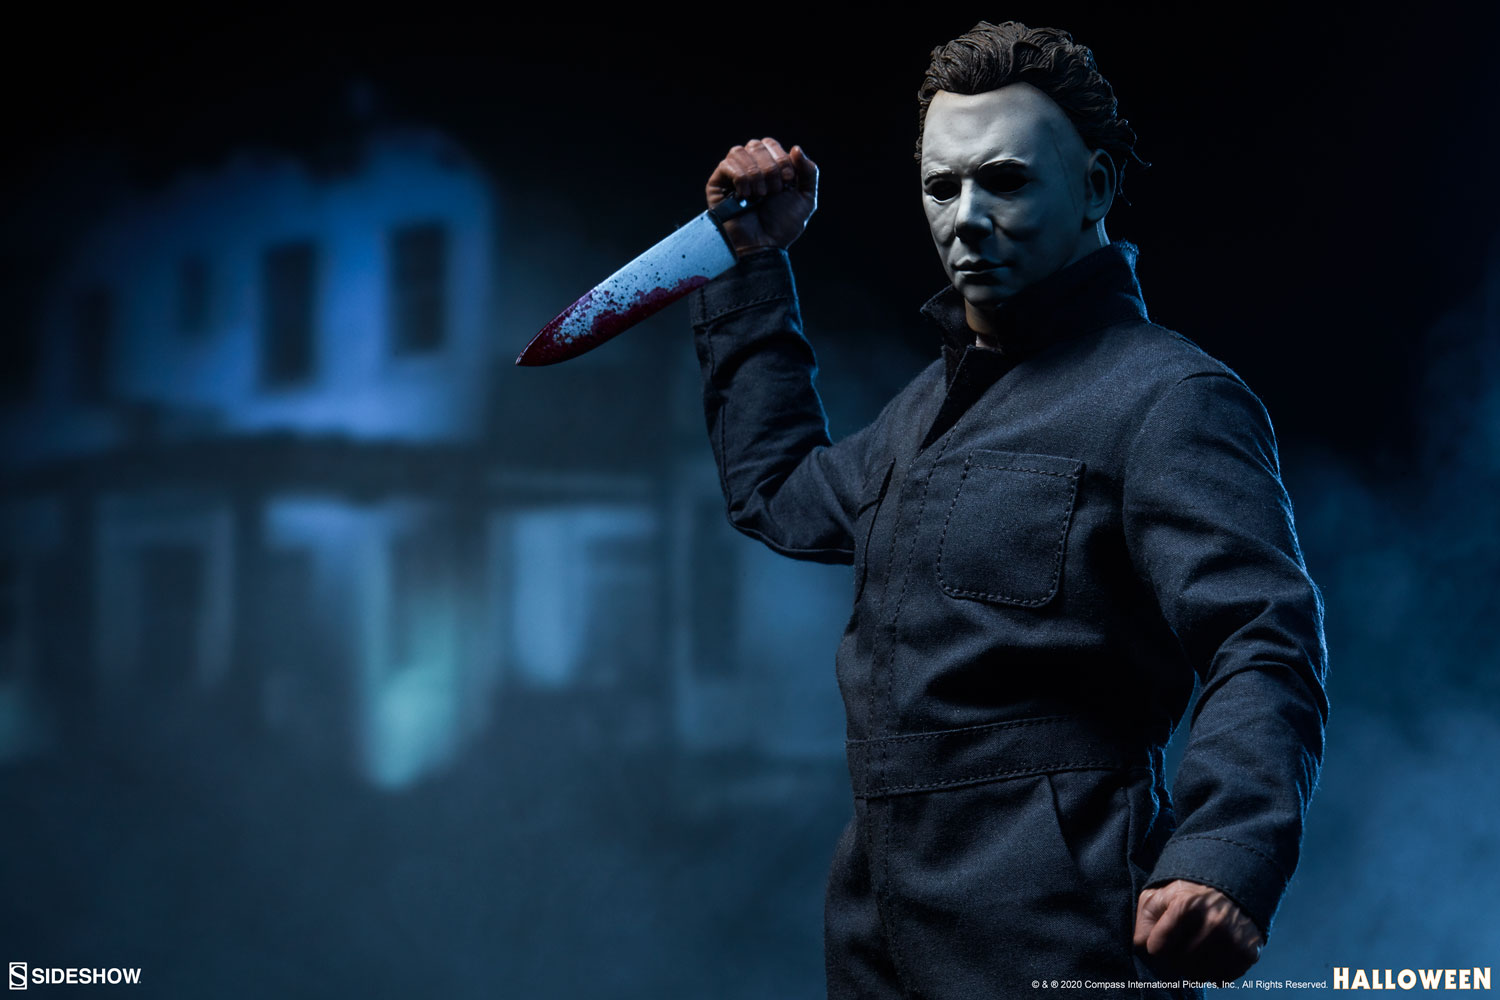 Pre-Order Sideshow Michael Myers Halloween DX Sixth Scale Figure